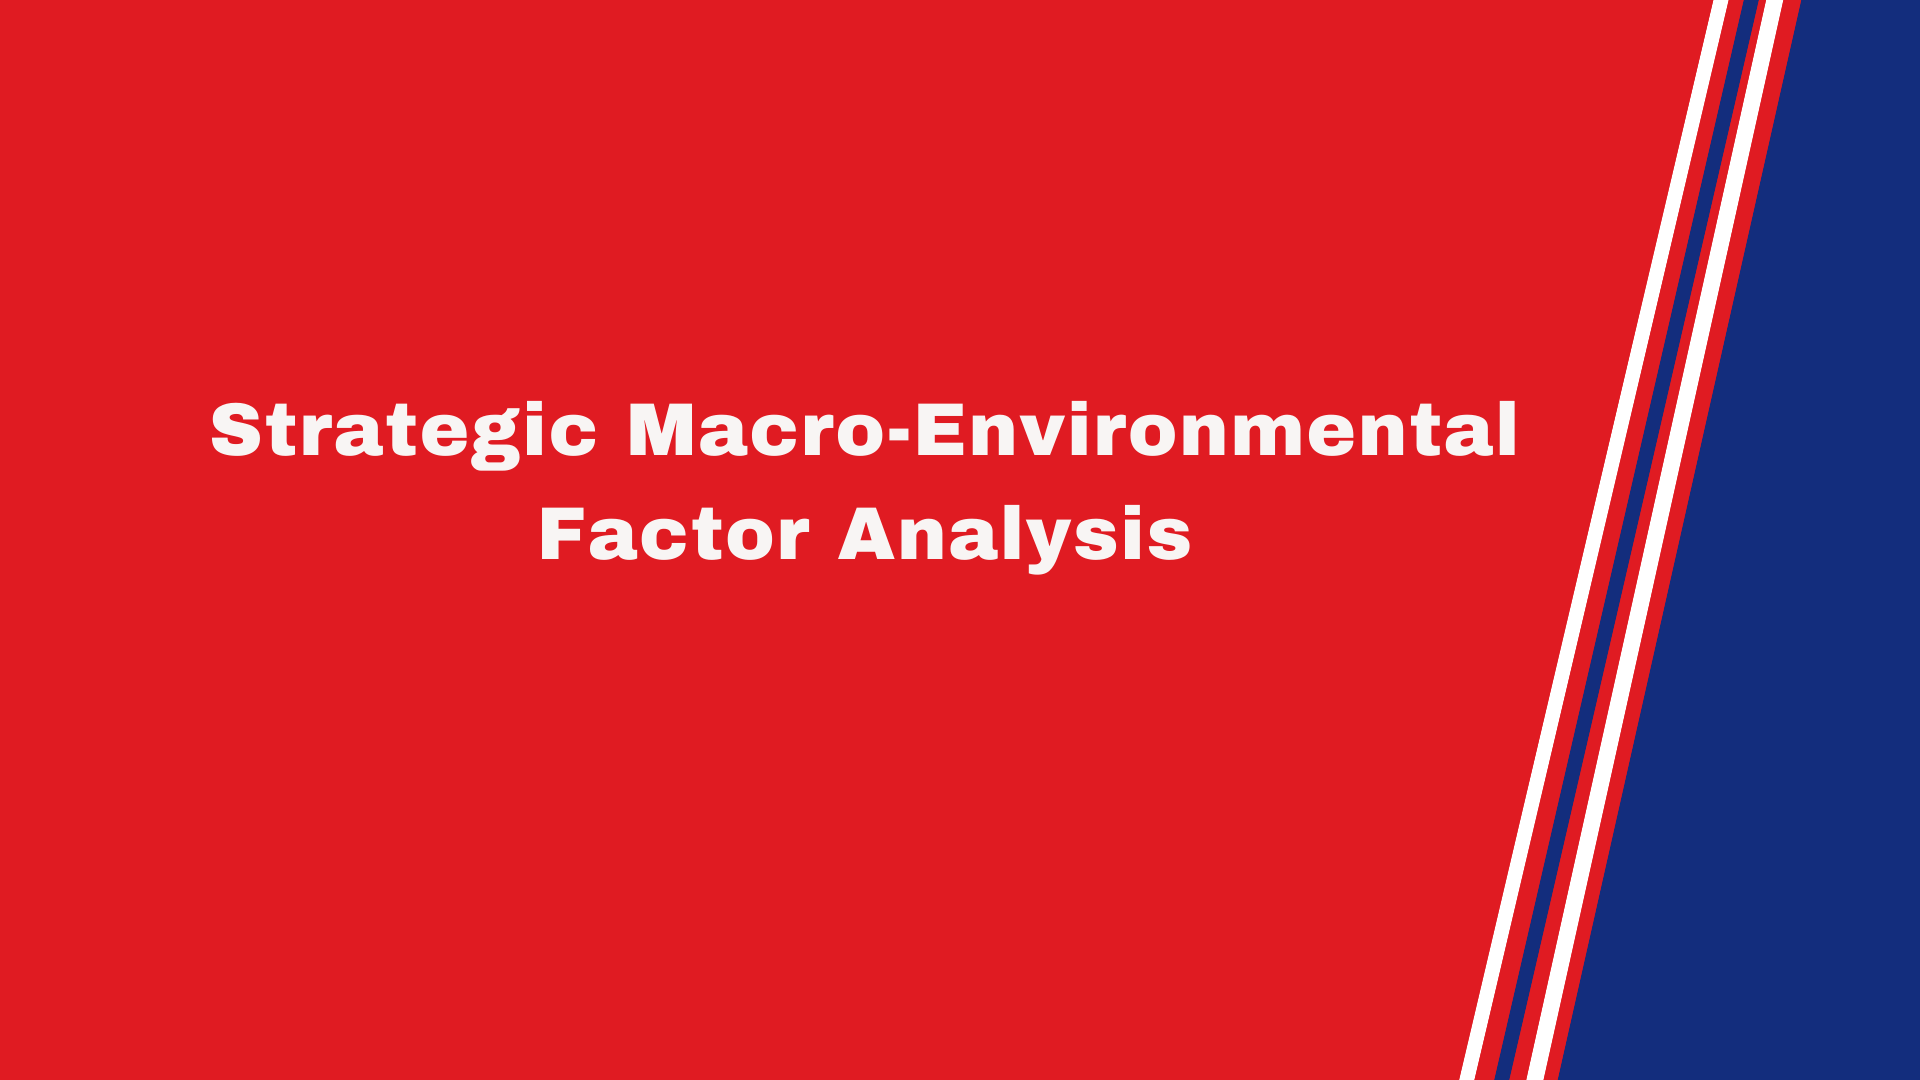 Strategic Macro-Environmental Factor Analysis